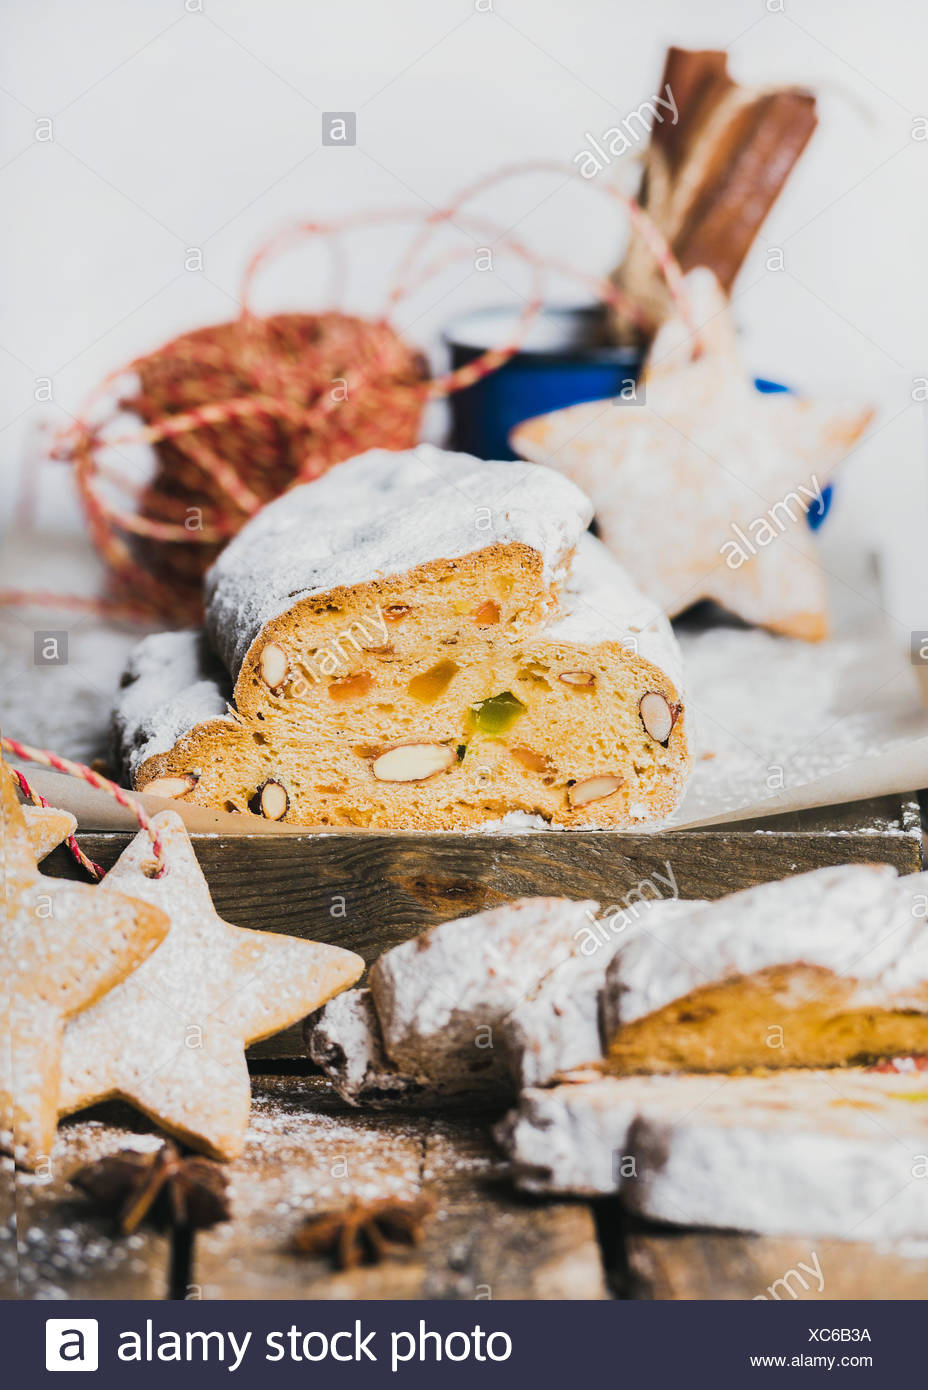 Piece of Traditional German Christmas cake Stollen with festive gingerbread star shaped cookies, selective focus, white background, vertical compositi - Stock Image